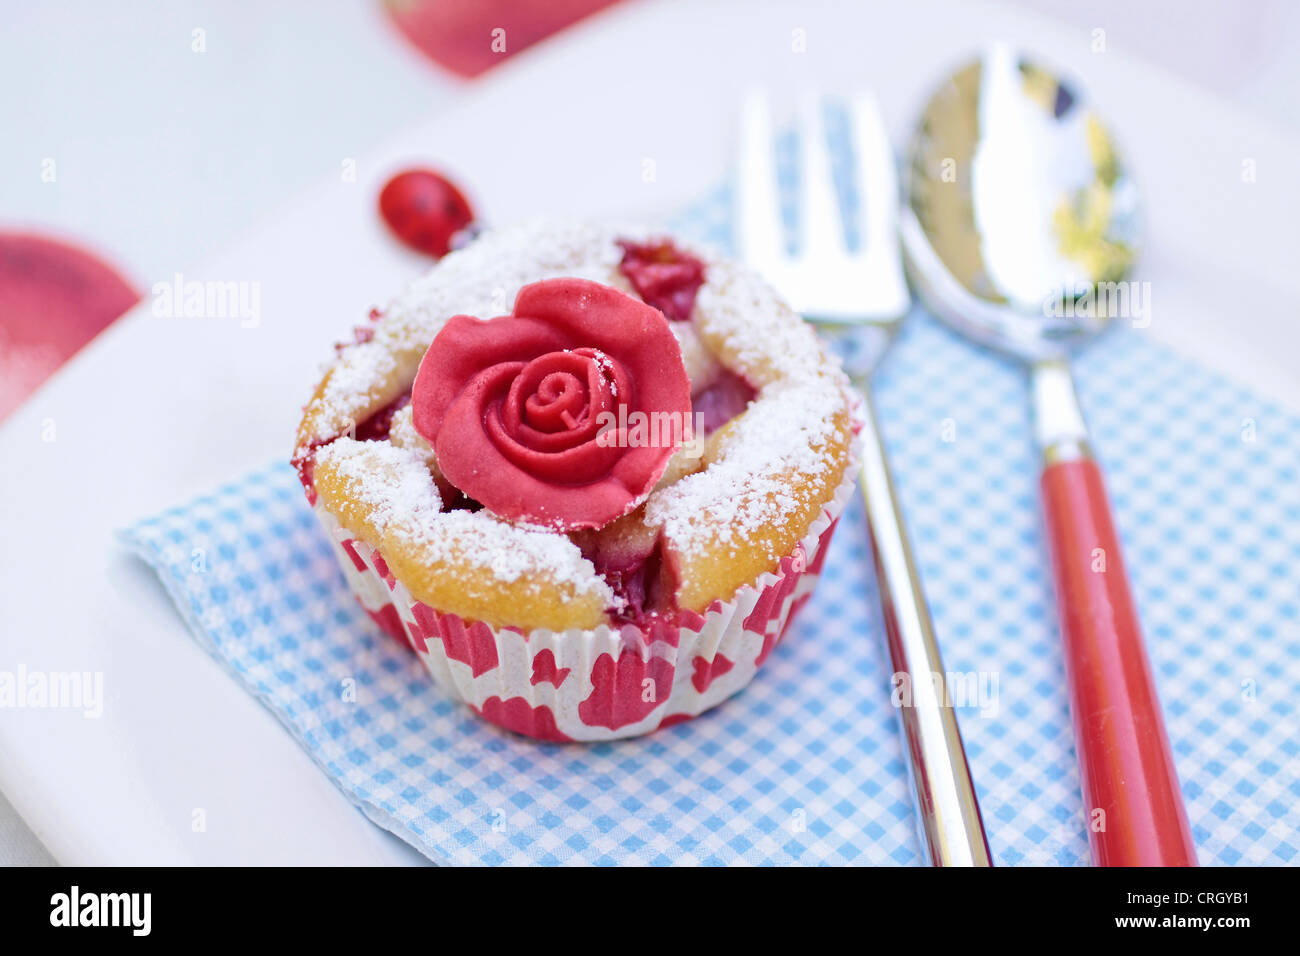 Muffin with marchpane rose on coffee table - Stock Image